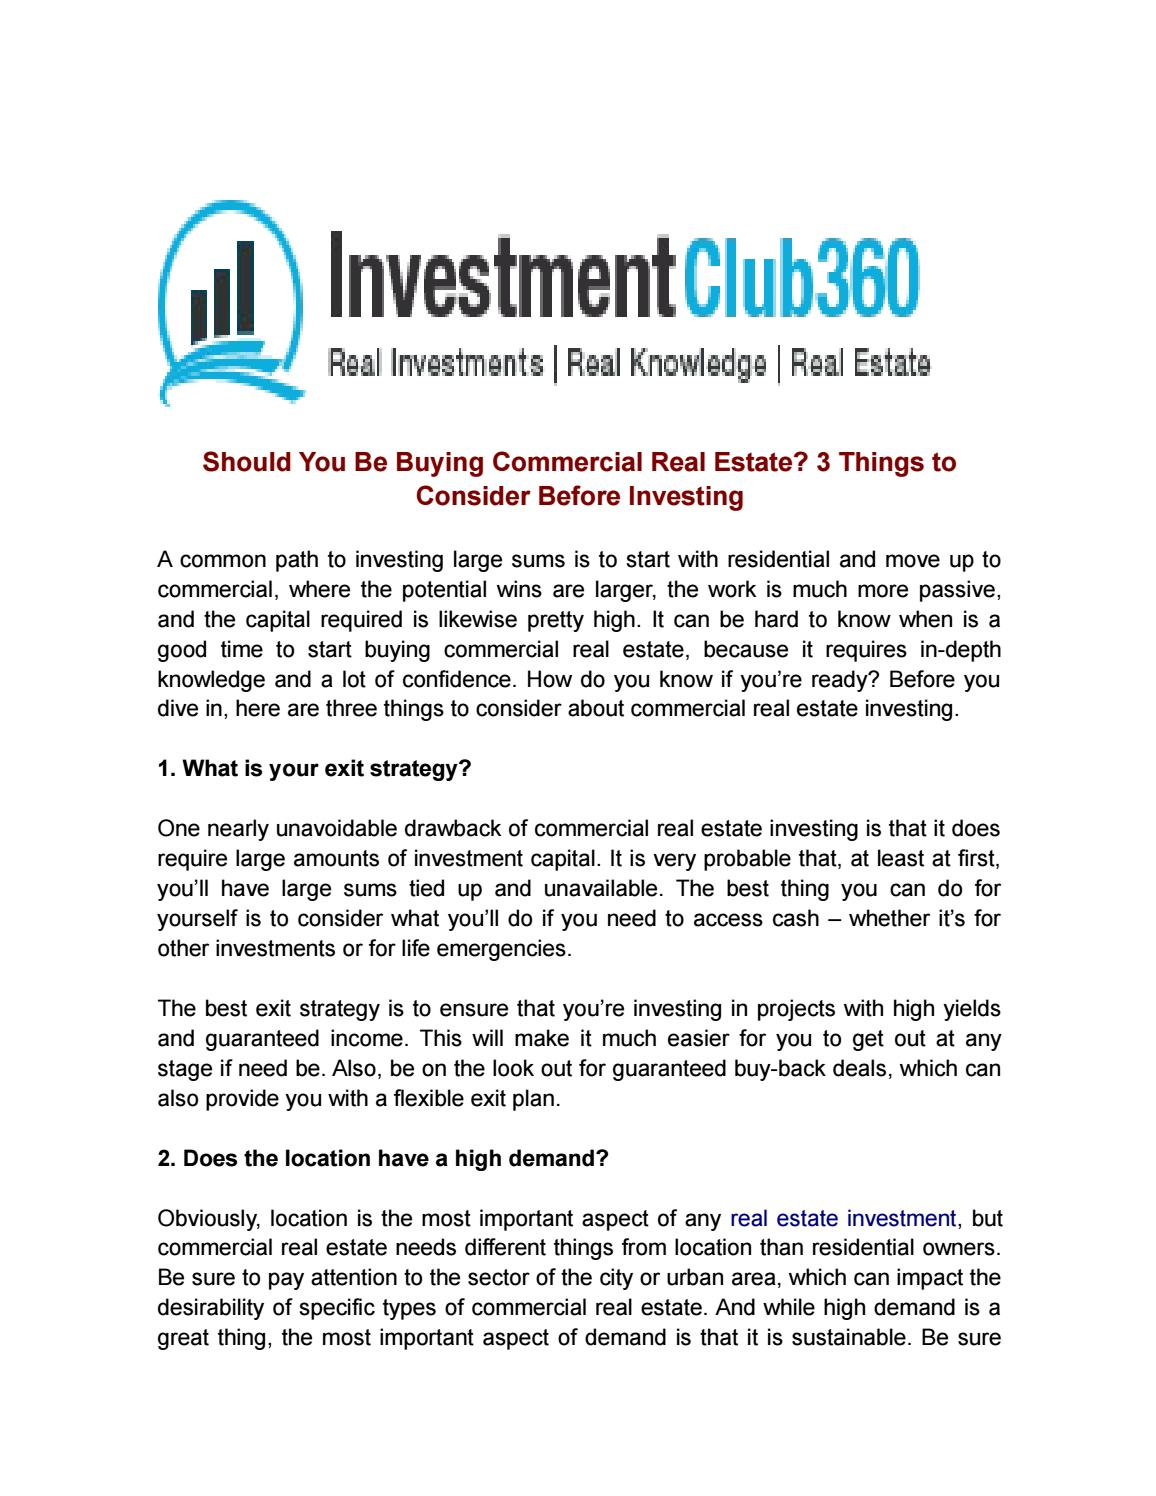 Should you be buying commercial real estate 3 things to consider should you be buying commercial real estate 3 things to consider before investing by investment club360 issuu solutioingenieria Choice Image